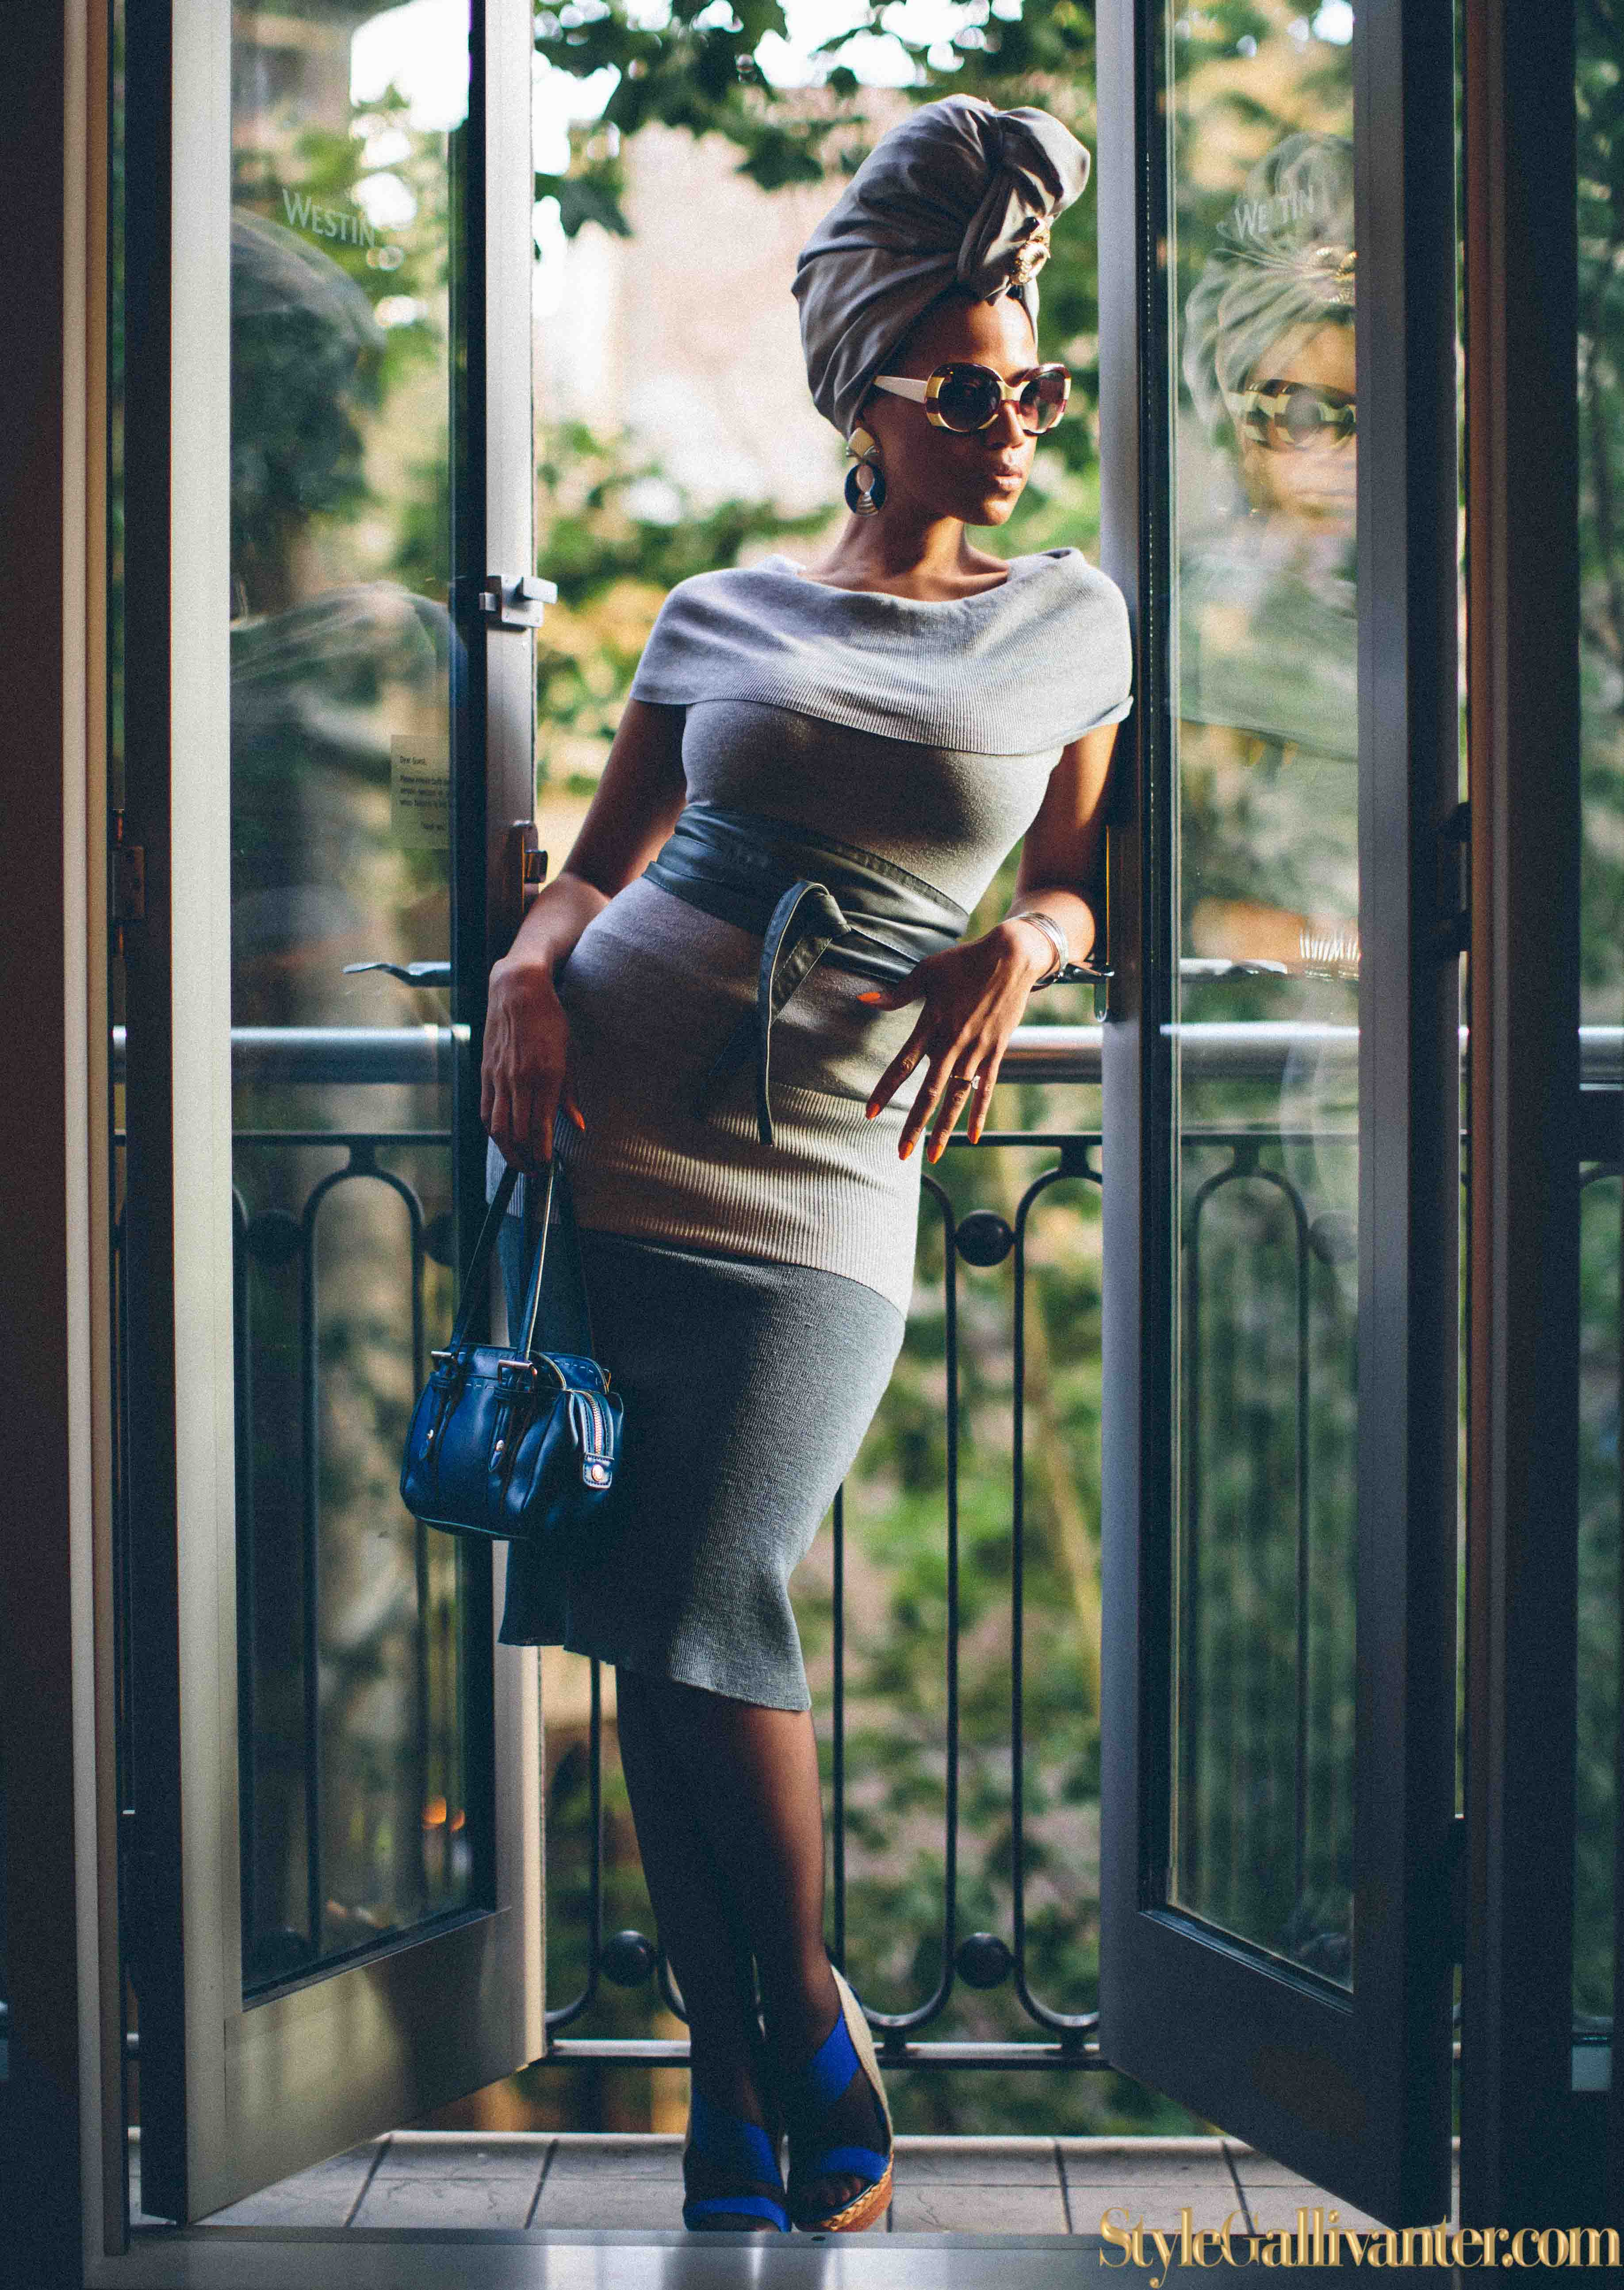 FIFTY-SHADES-OF-GREY-MOVIE_best-vintage-bloggers-2014_high-fashion-bloggers-melbourne_turban-trends-2014_melbourne-fashion-blogs-2014_africas-best-fashion-bloggers_all-grey-monotone-7